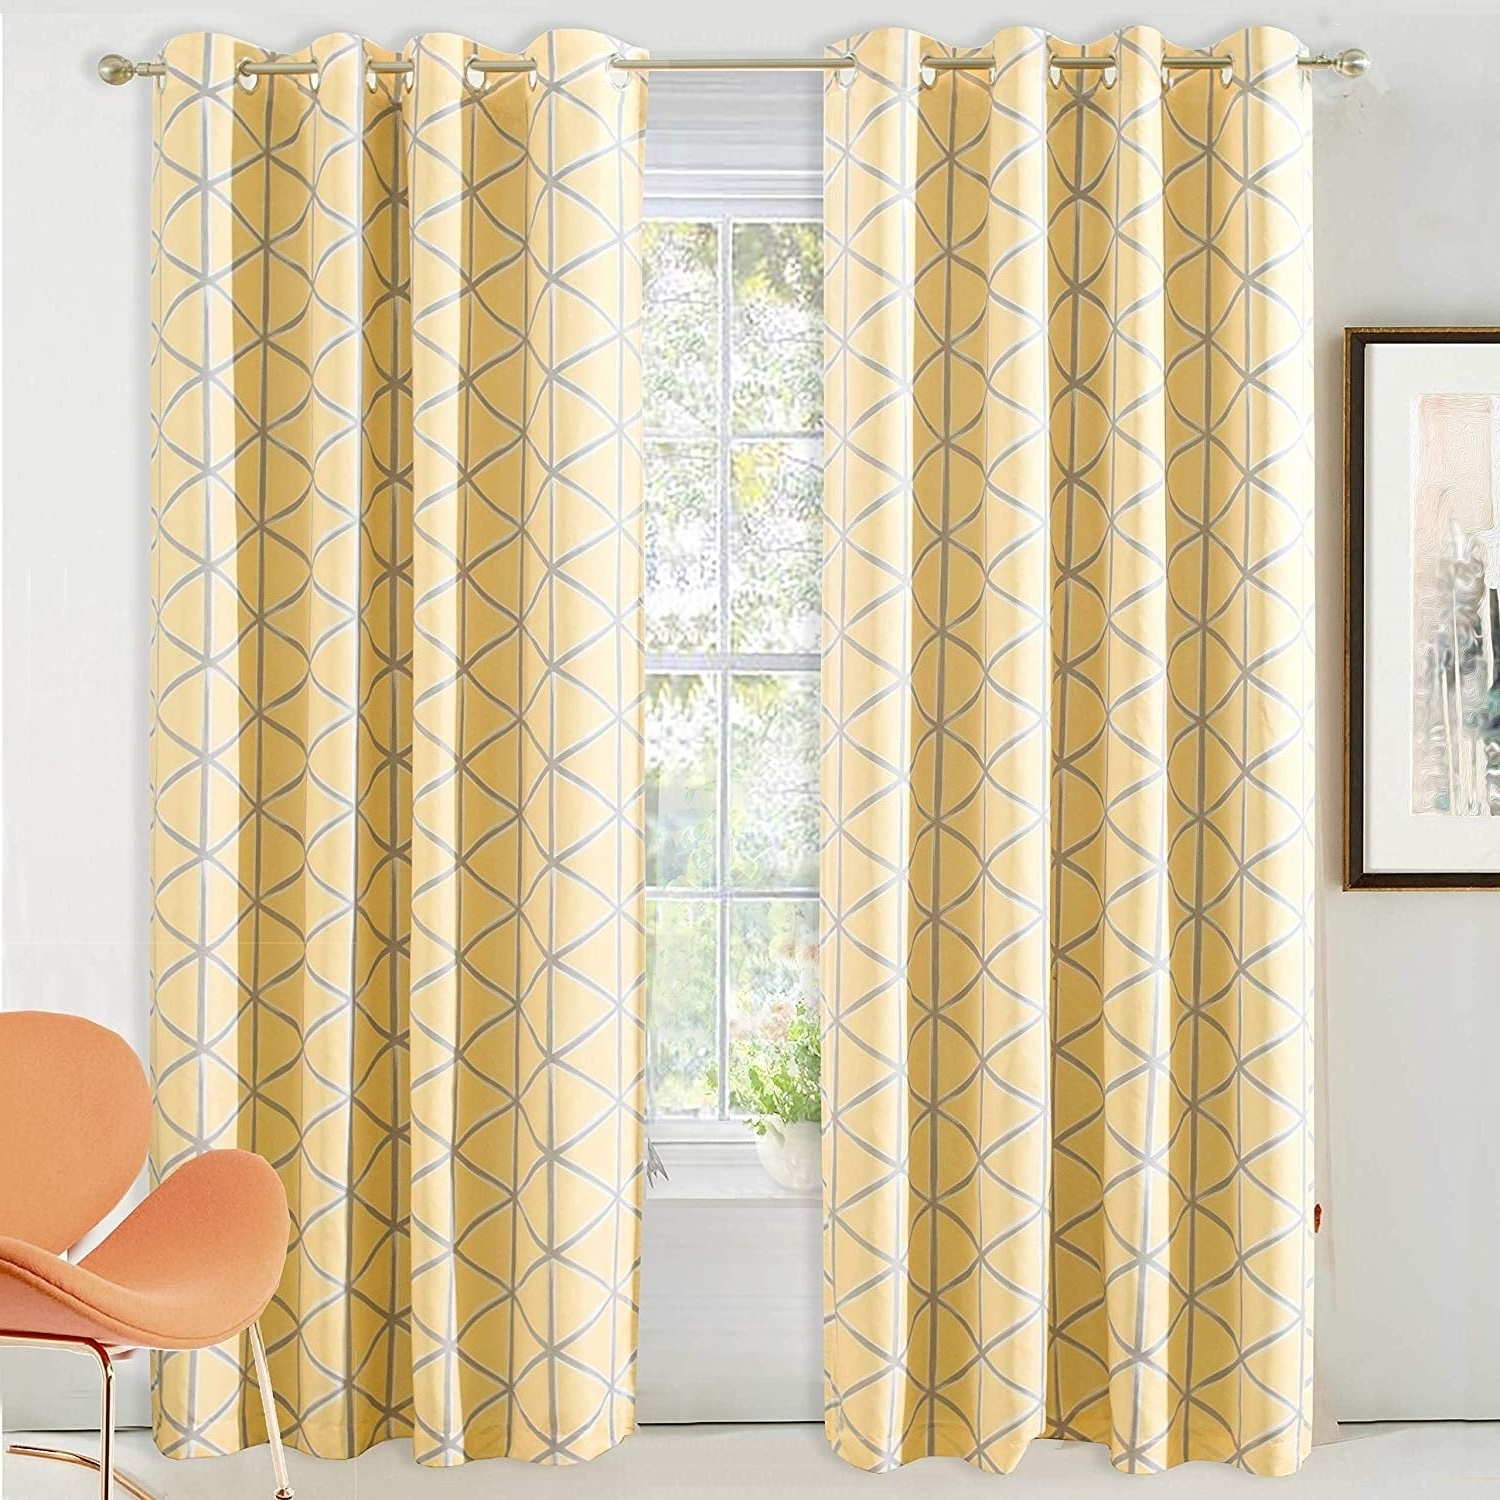 2020 Gracewood Hollow Tucakovic Energy Efficient Fabric Blackout Curtains With Driftaway Raymond Geometric Pattern Lined Blackout Window Curtain Panel Pair (View 13 of 20)